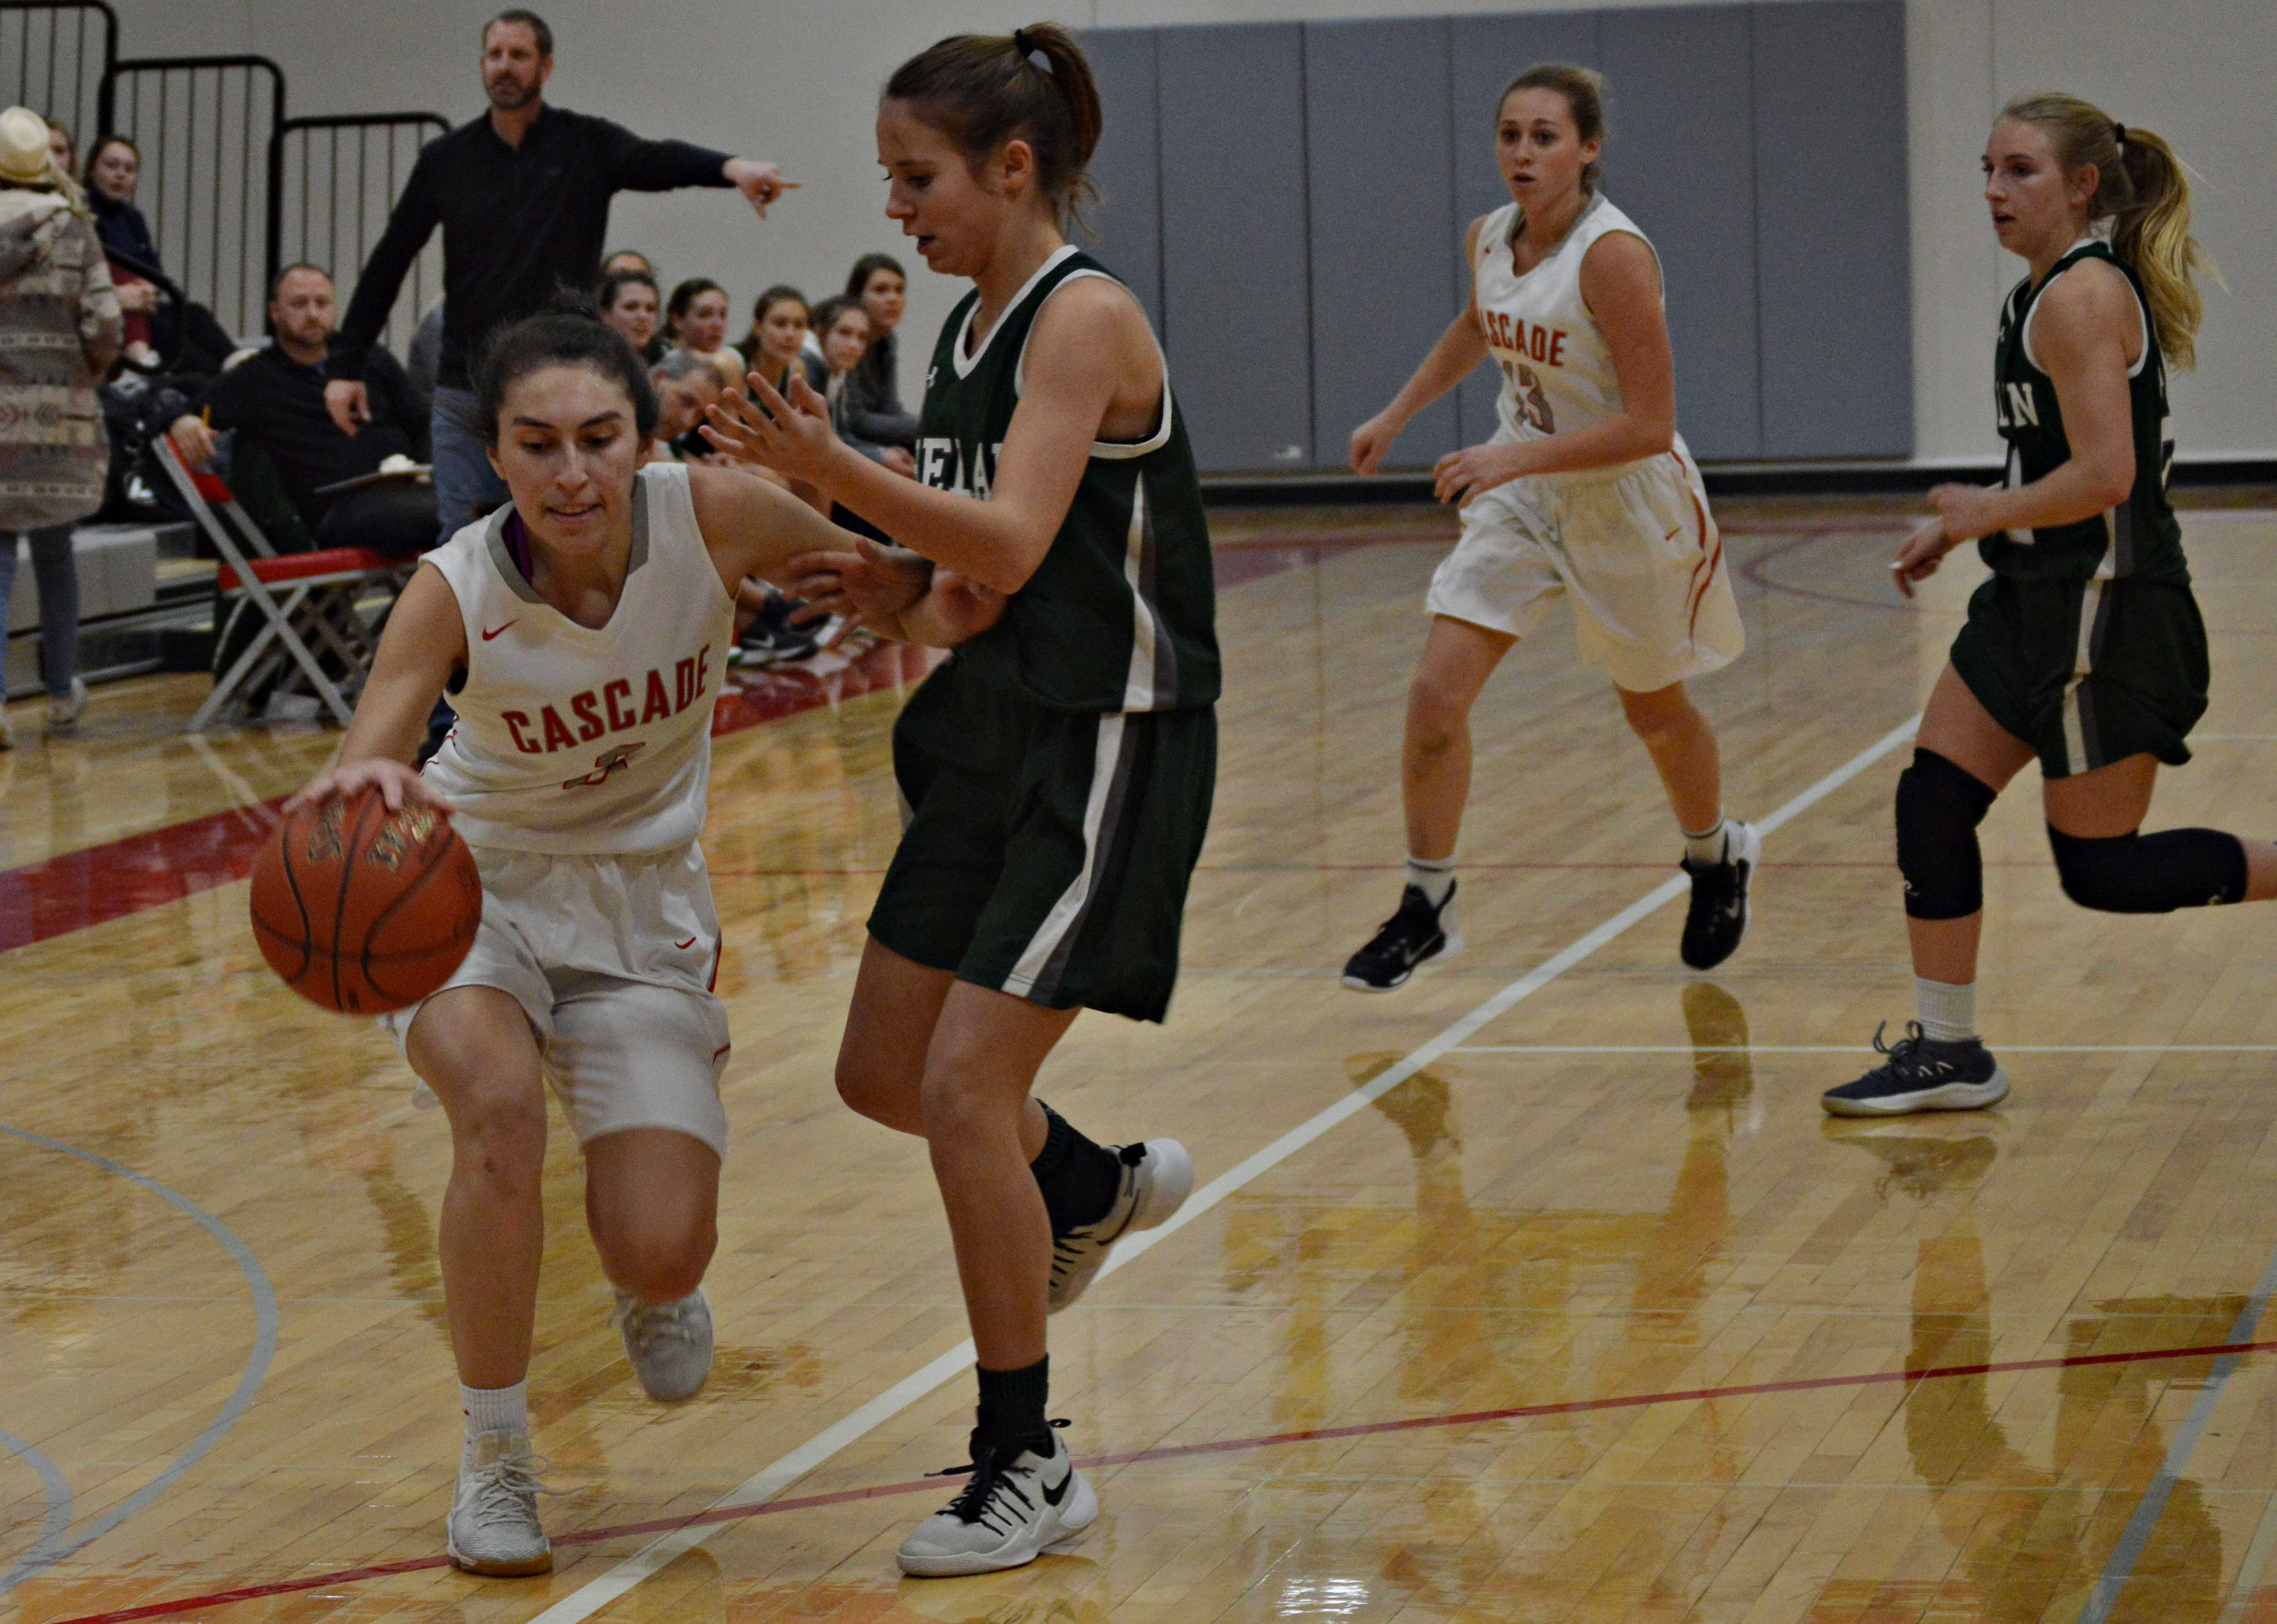 Dorothy Espionsa scored 10 points during the Jan. 23 game against Chelan..